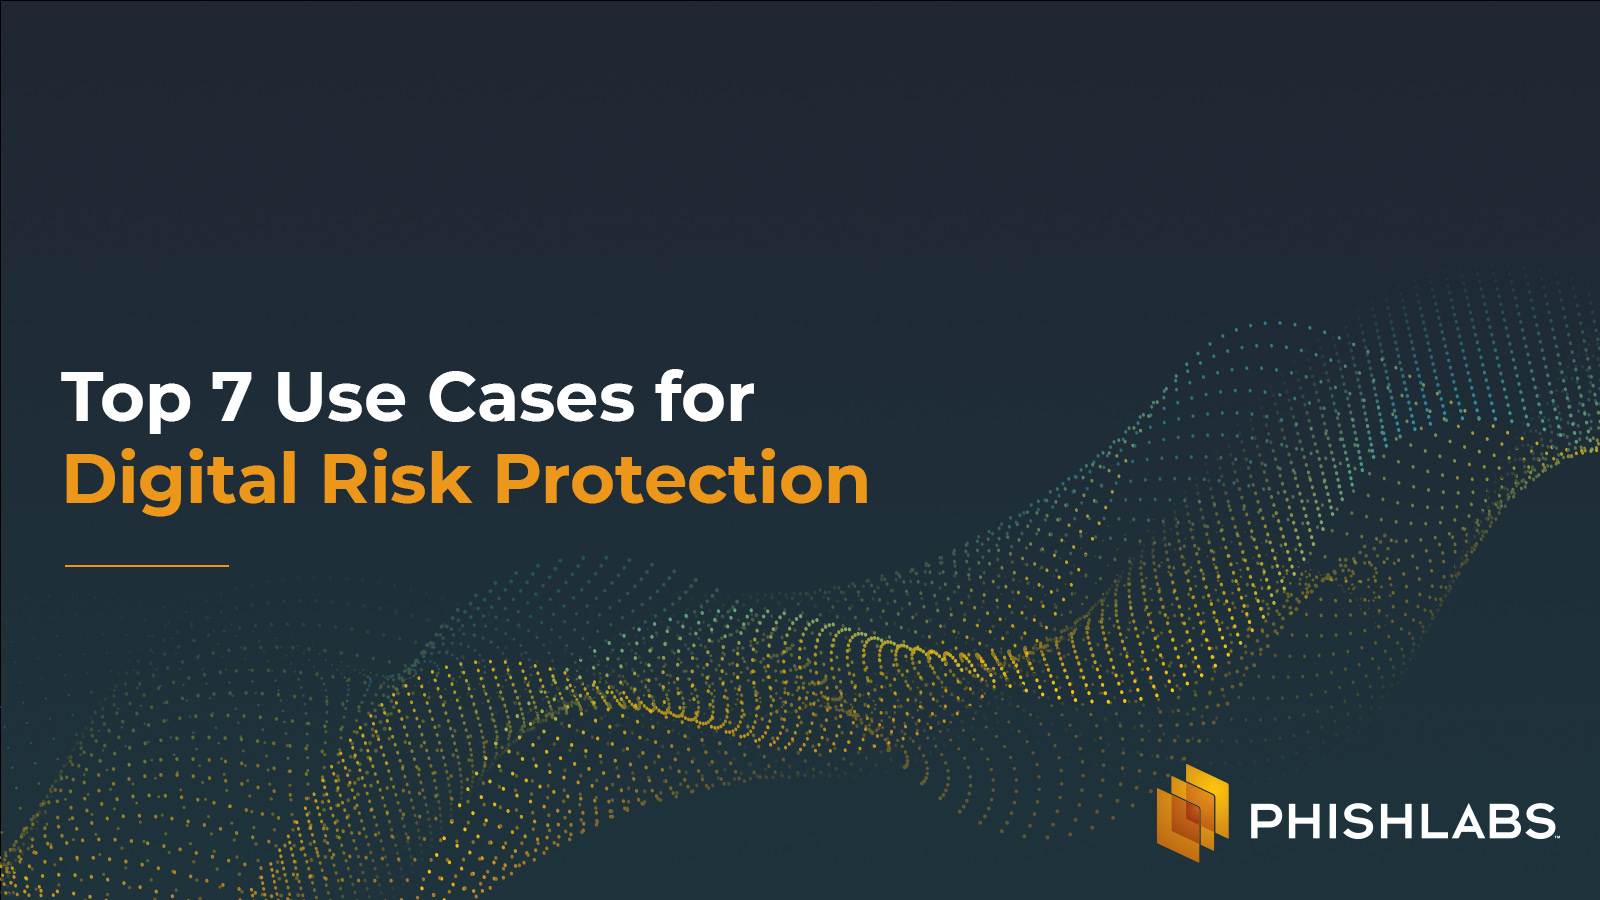 Top 7 Use Cases for Digital Risk Protection